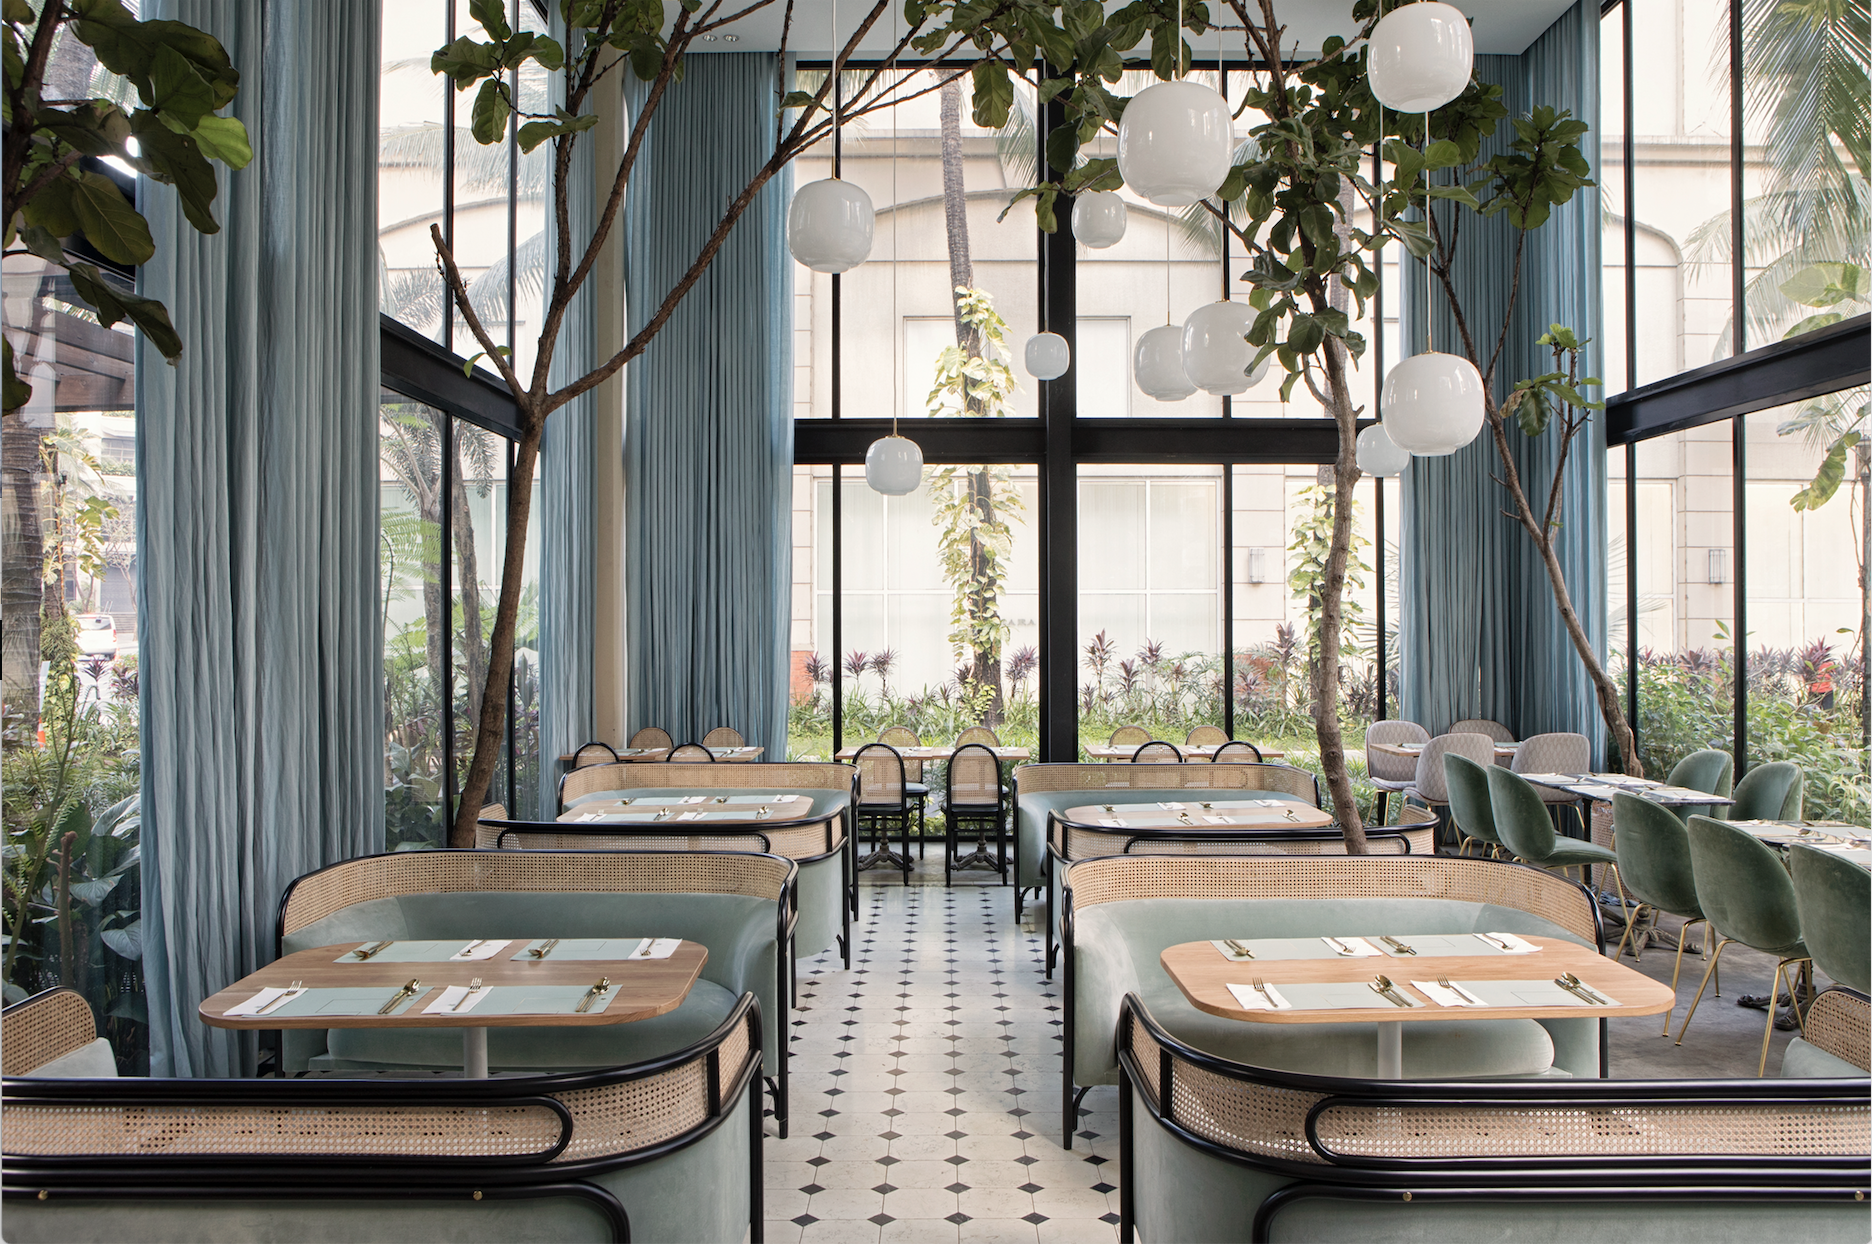 The Posh Povera 'Targa' and 'Morris' sofas by GamFratesi for Gebruder Thonet decorate the Harlan+Holden Glasshouse Café in Makati City, Philippines